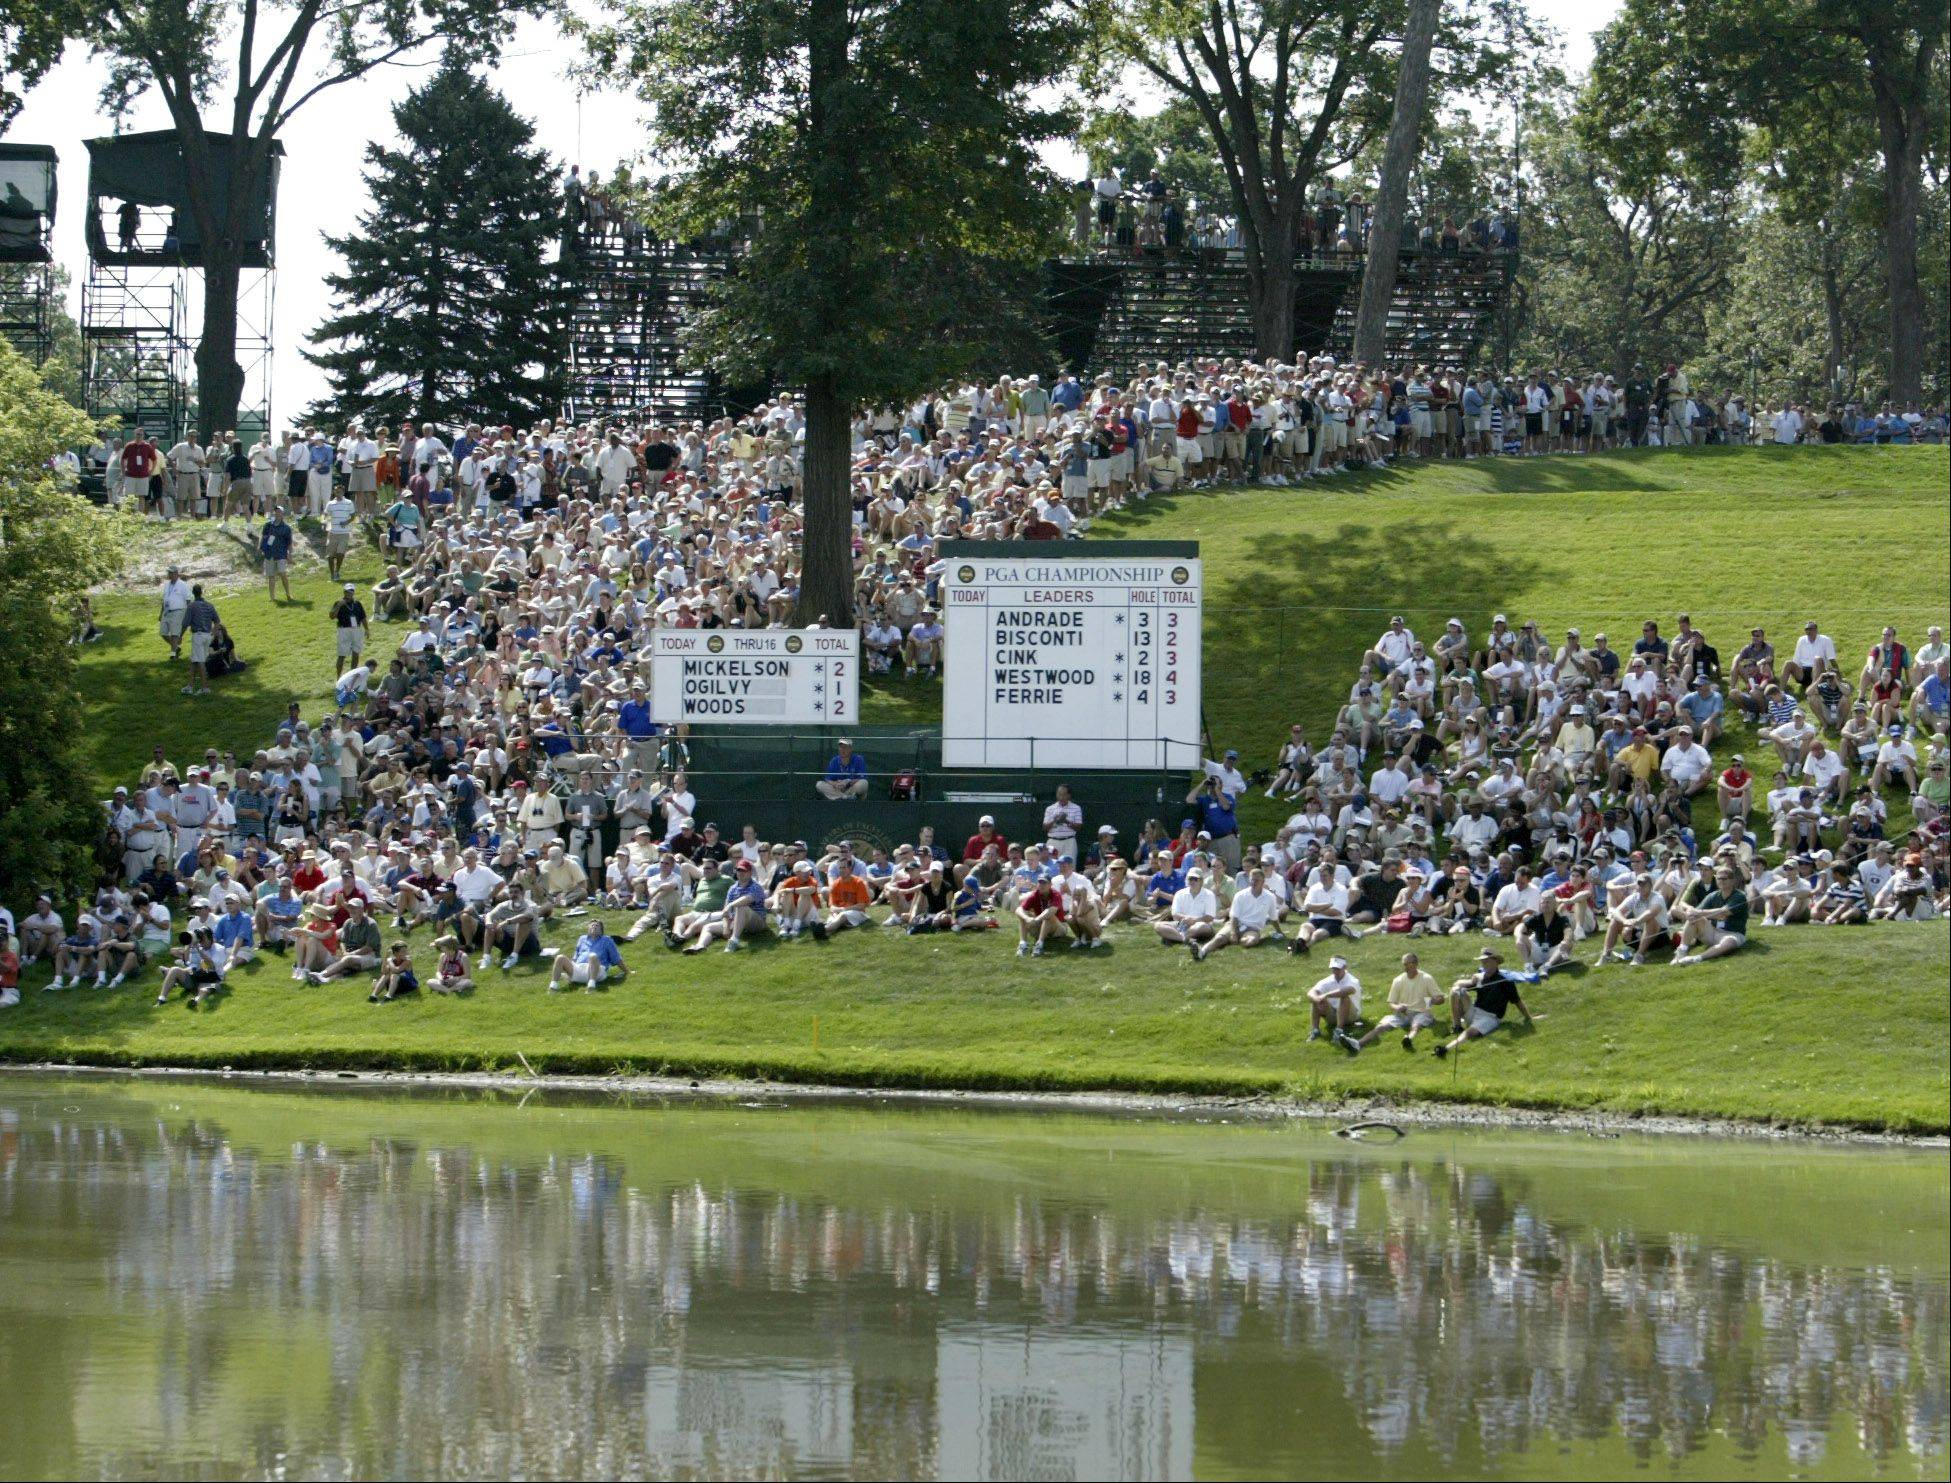 Crowds will pack Medinah Country Club for thethe 2012 Ryder Cup as they did for the PGA tournament in 2006. Tickets will be hard to come by.